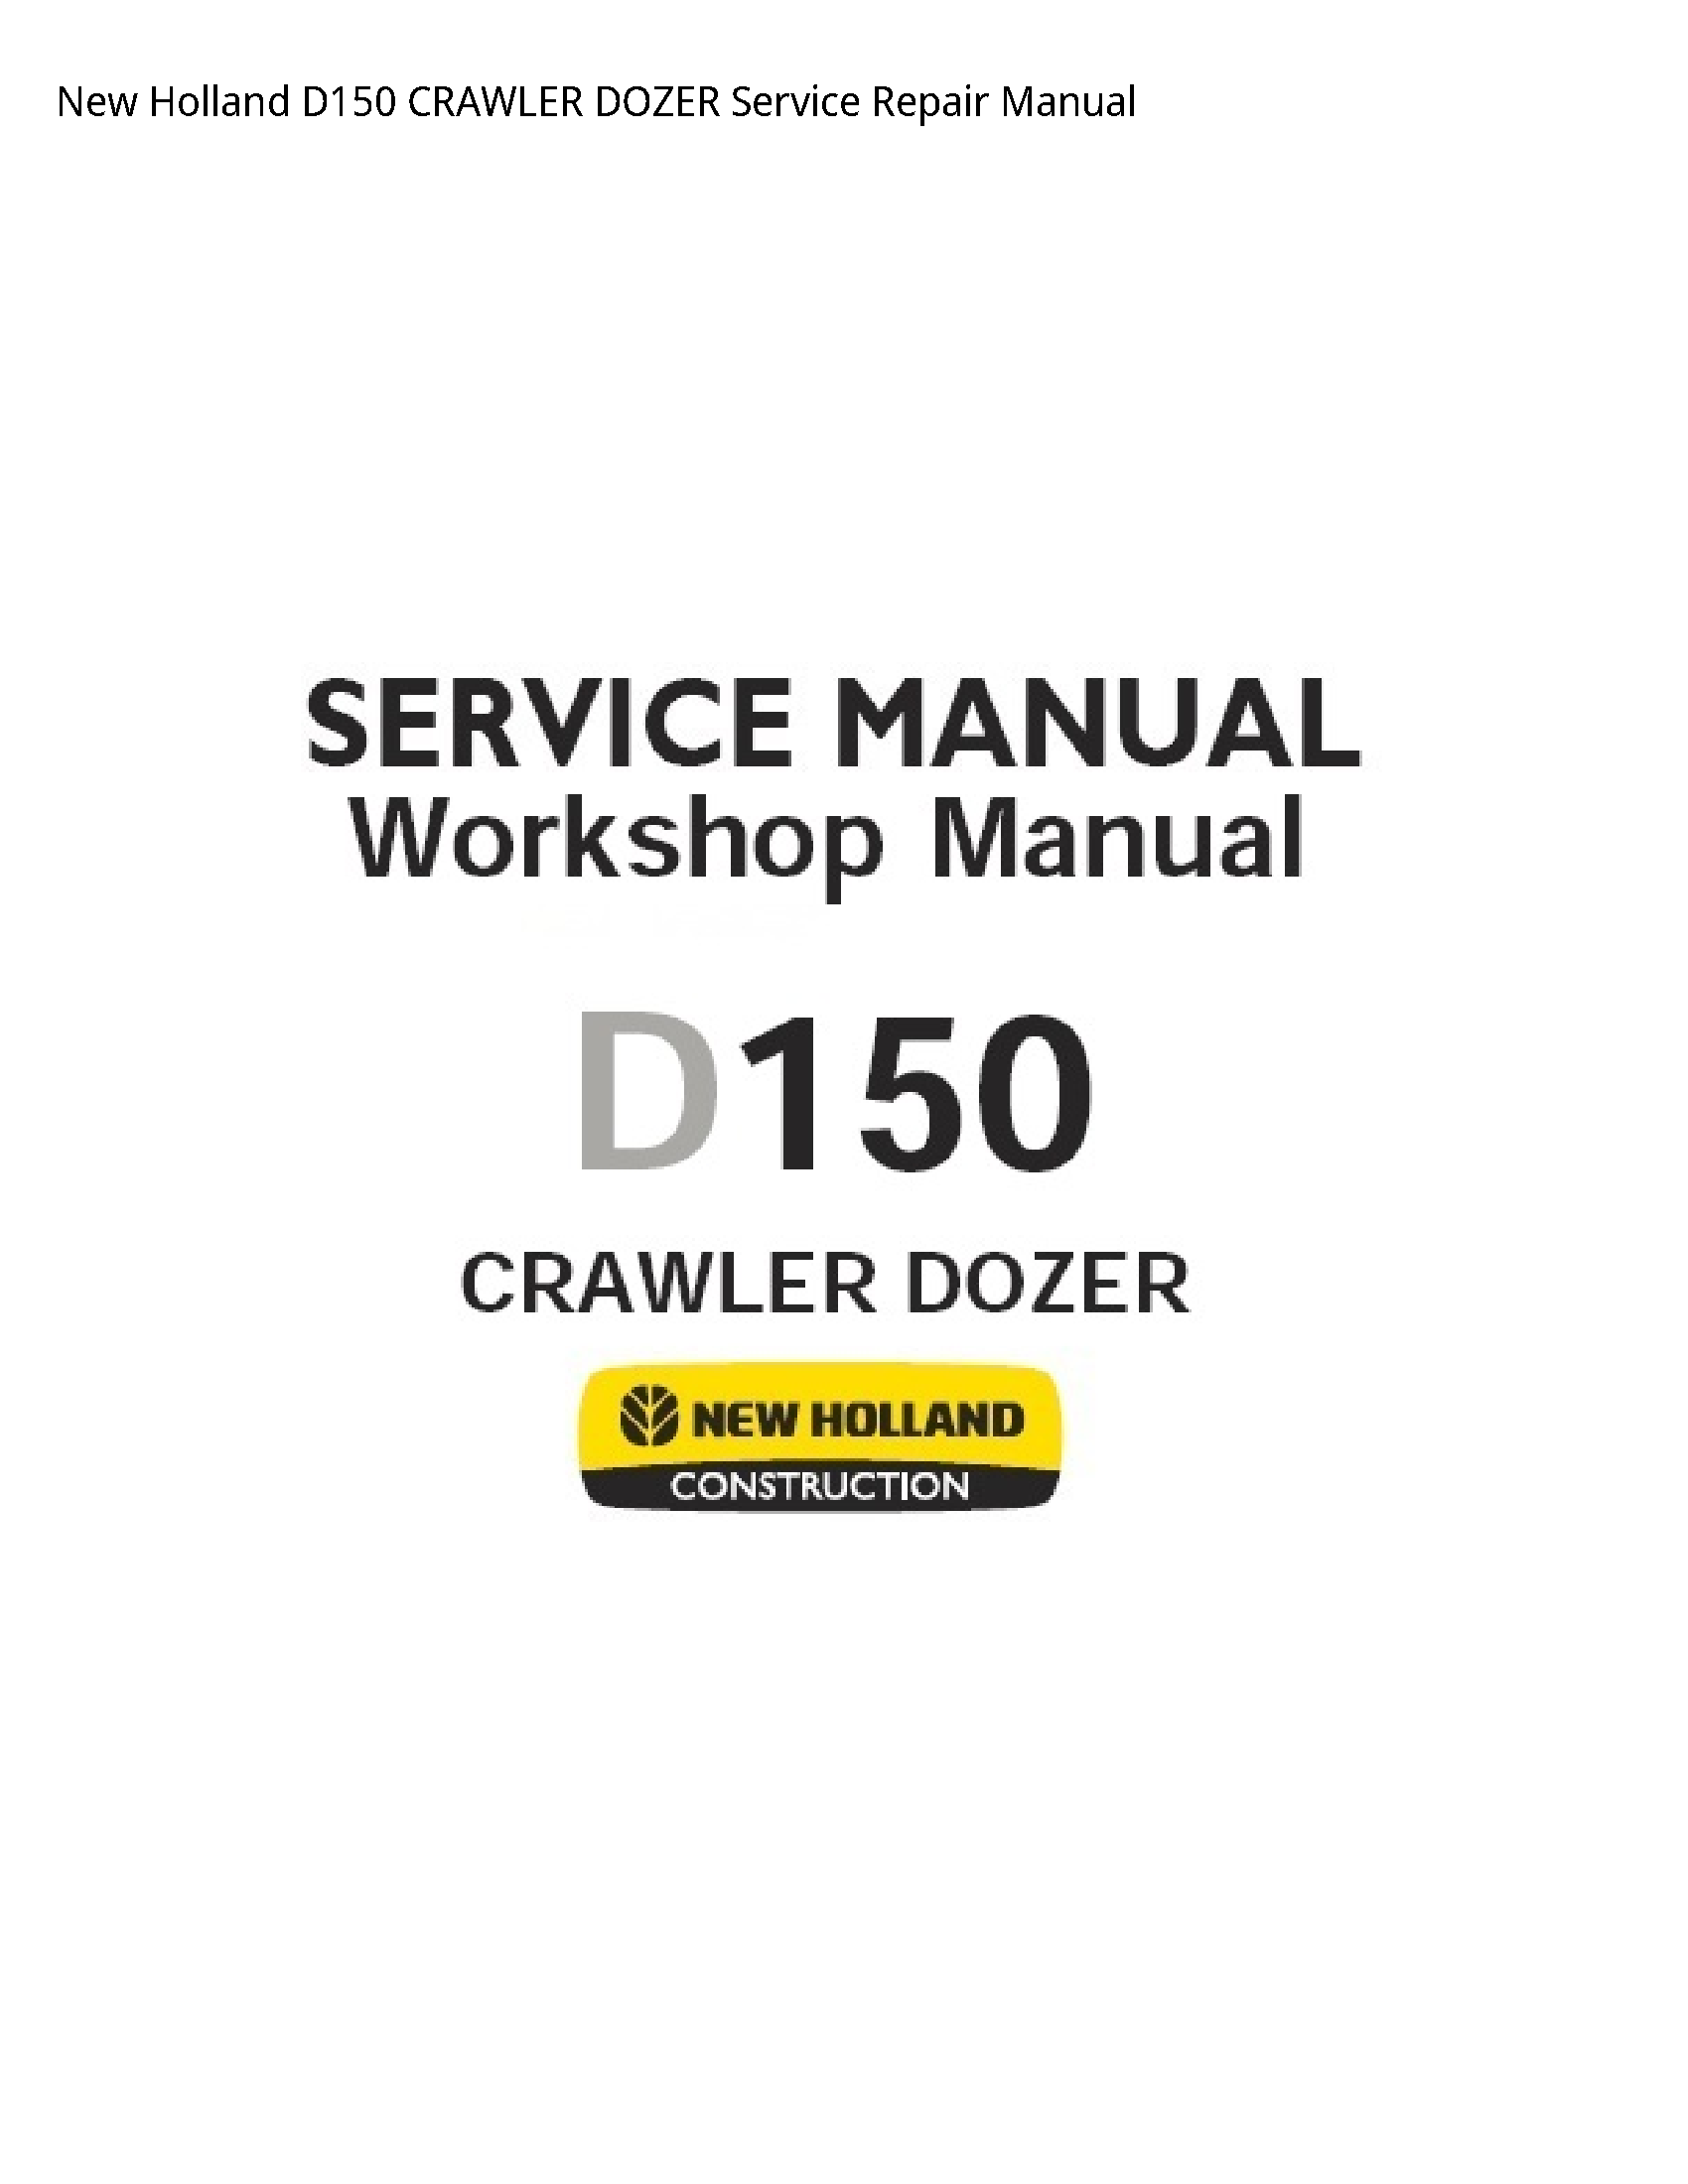 New Holland / Ford New Holland D150 CRAWLER DOZER manual